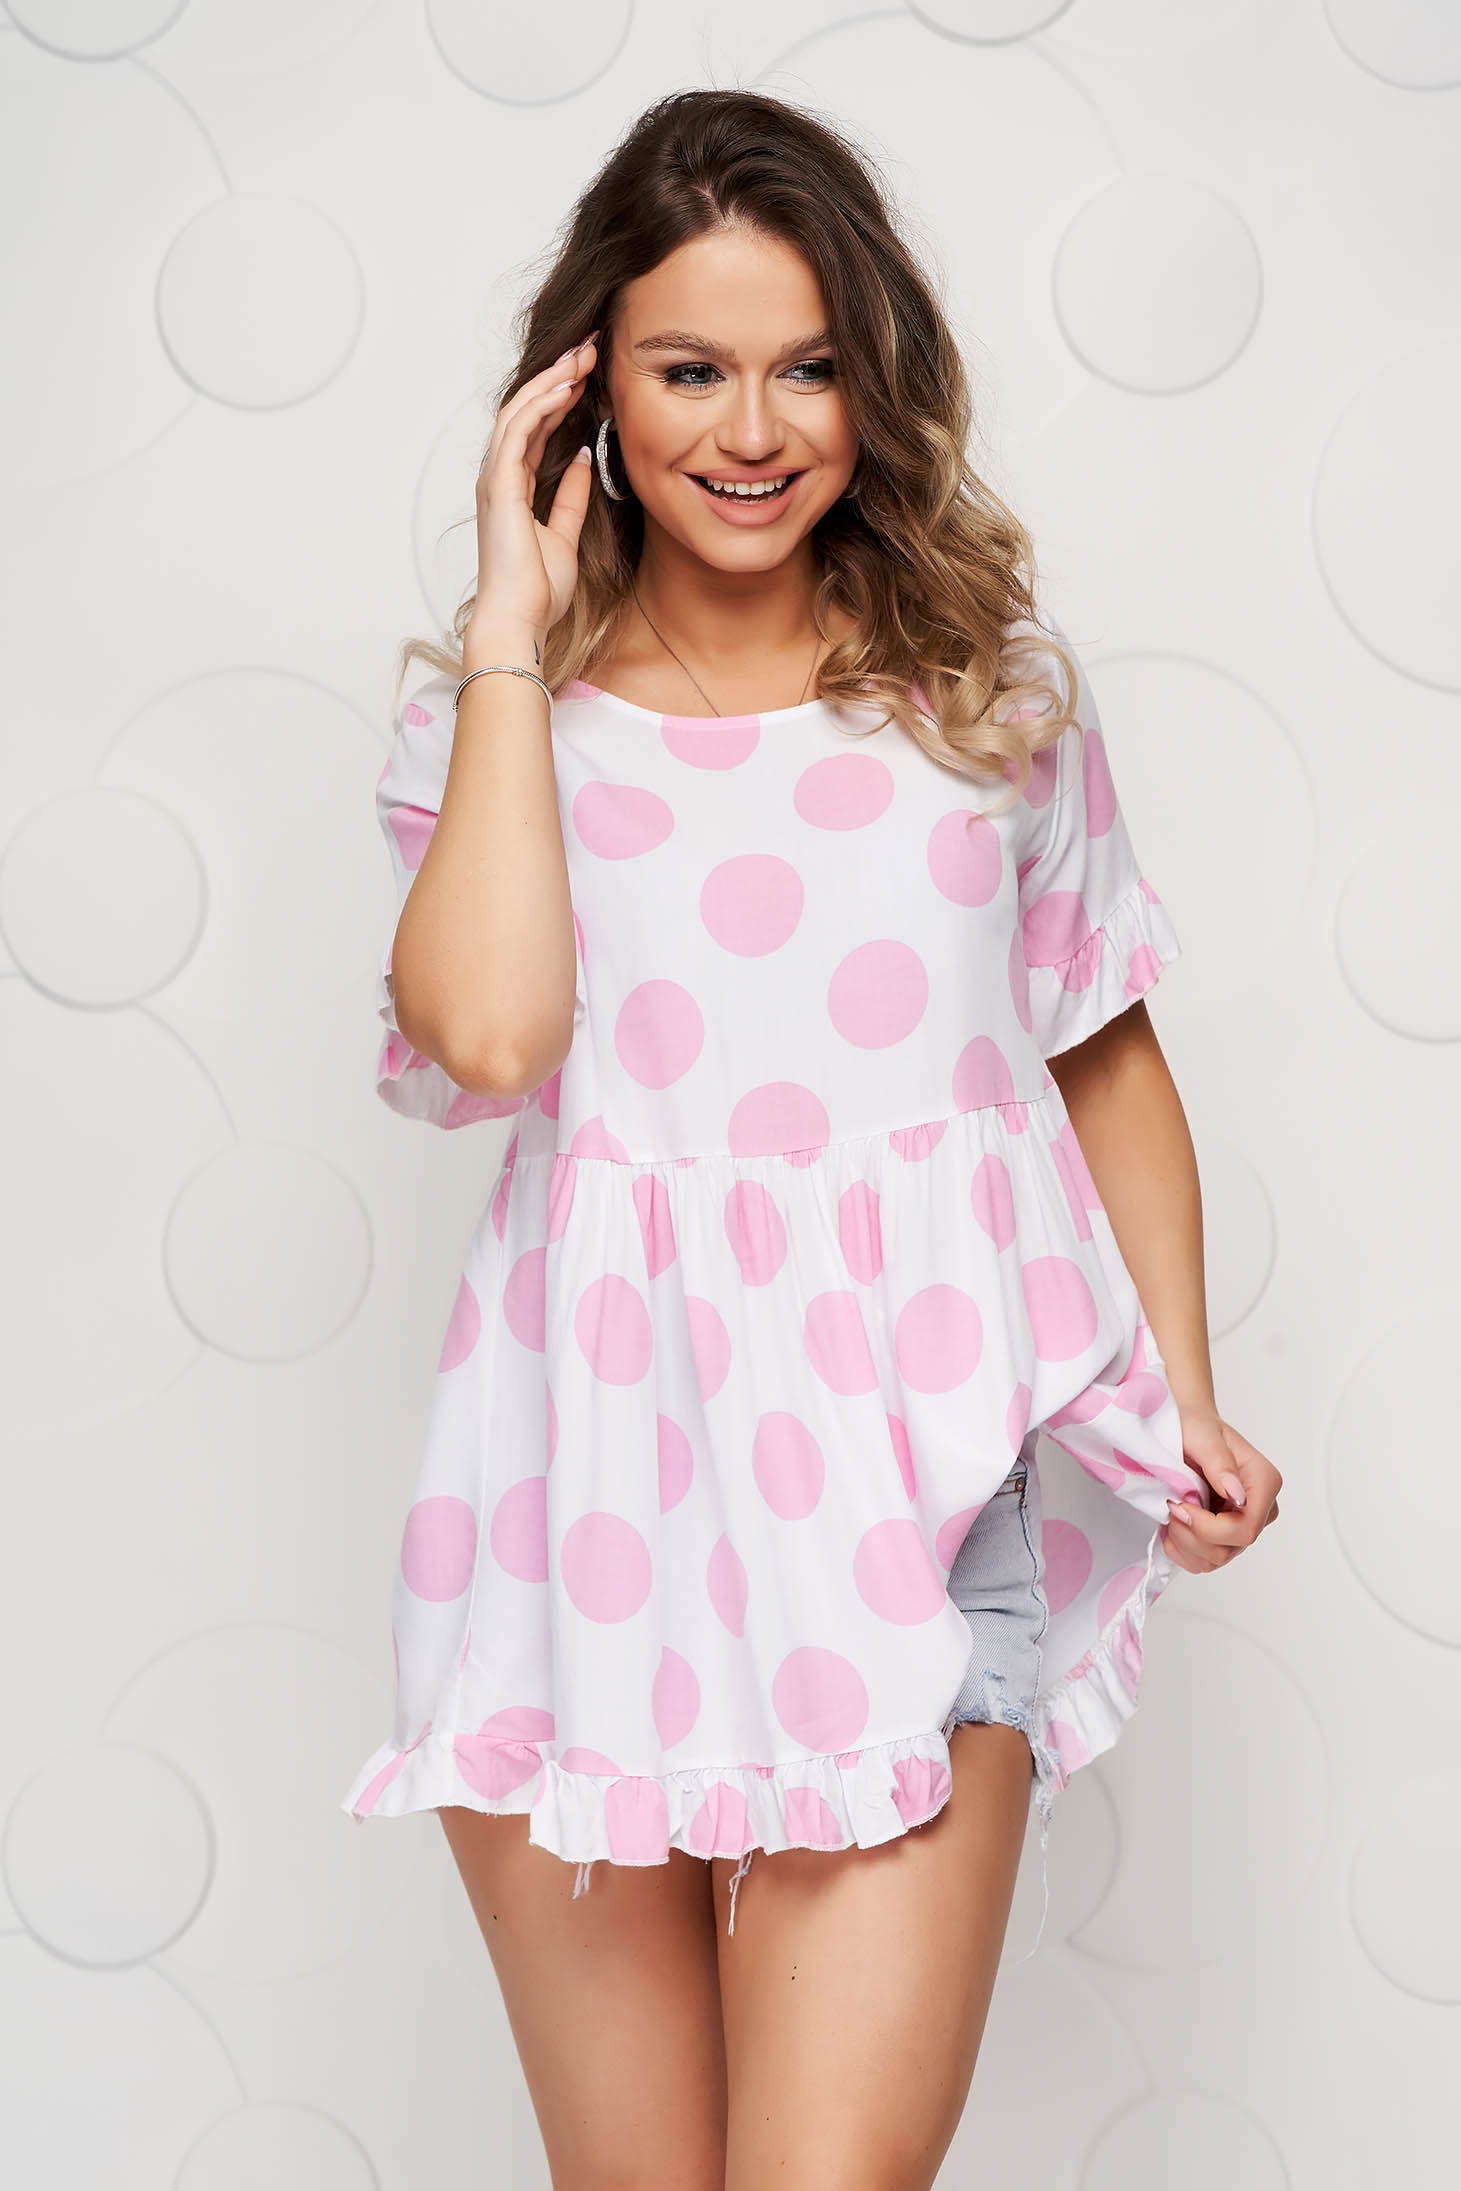 Women`s blouse dots print loose fit with ruffle details airy fabric